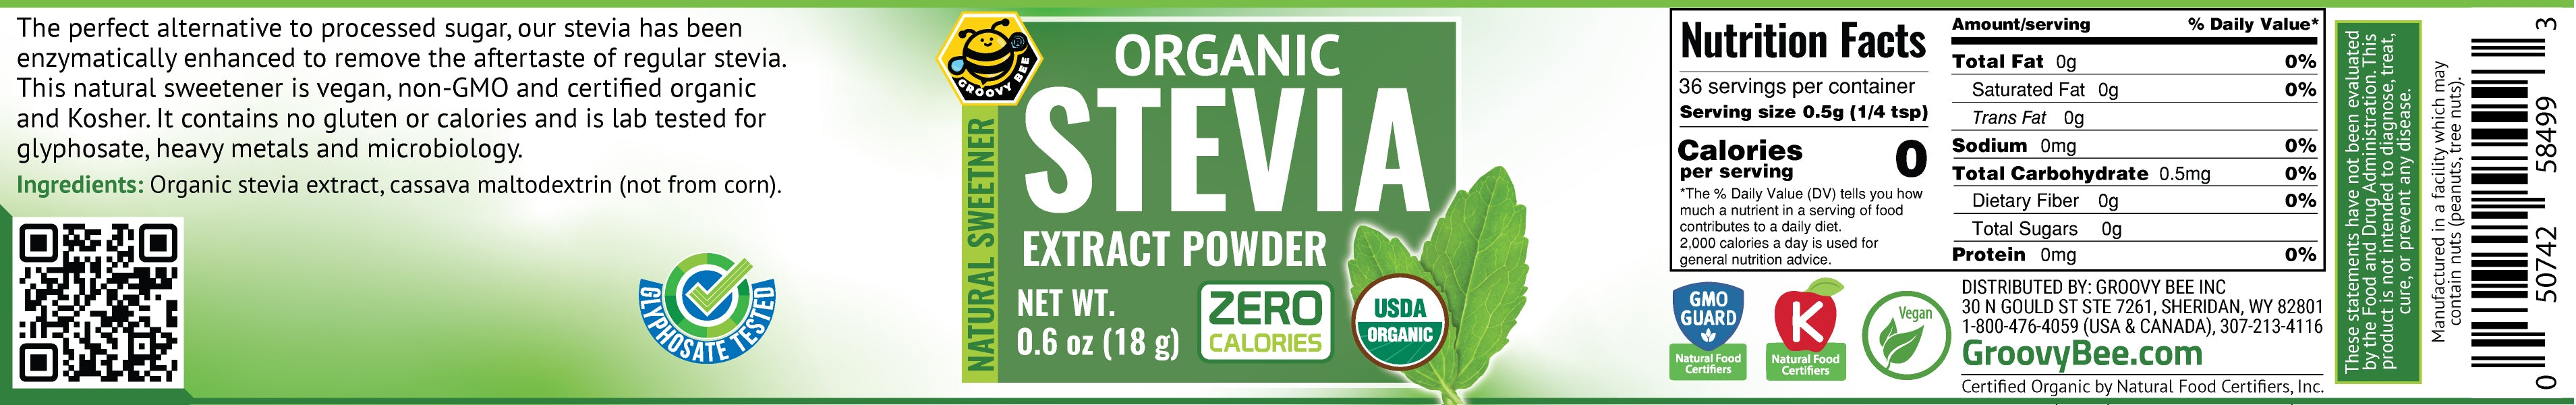 Organic Stevia Extract Powder 0.6oz (18g)